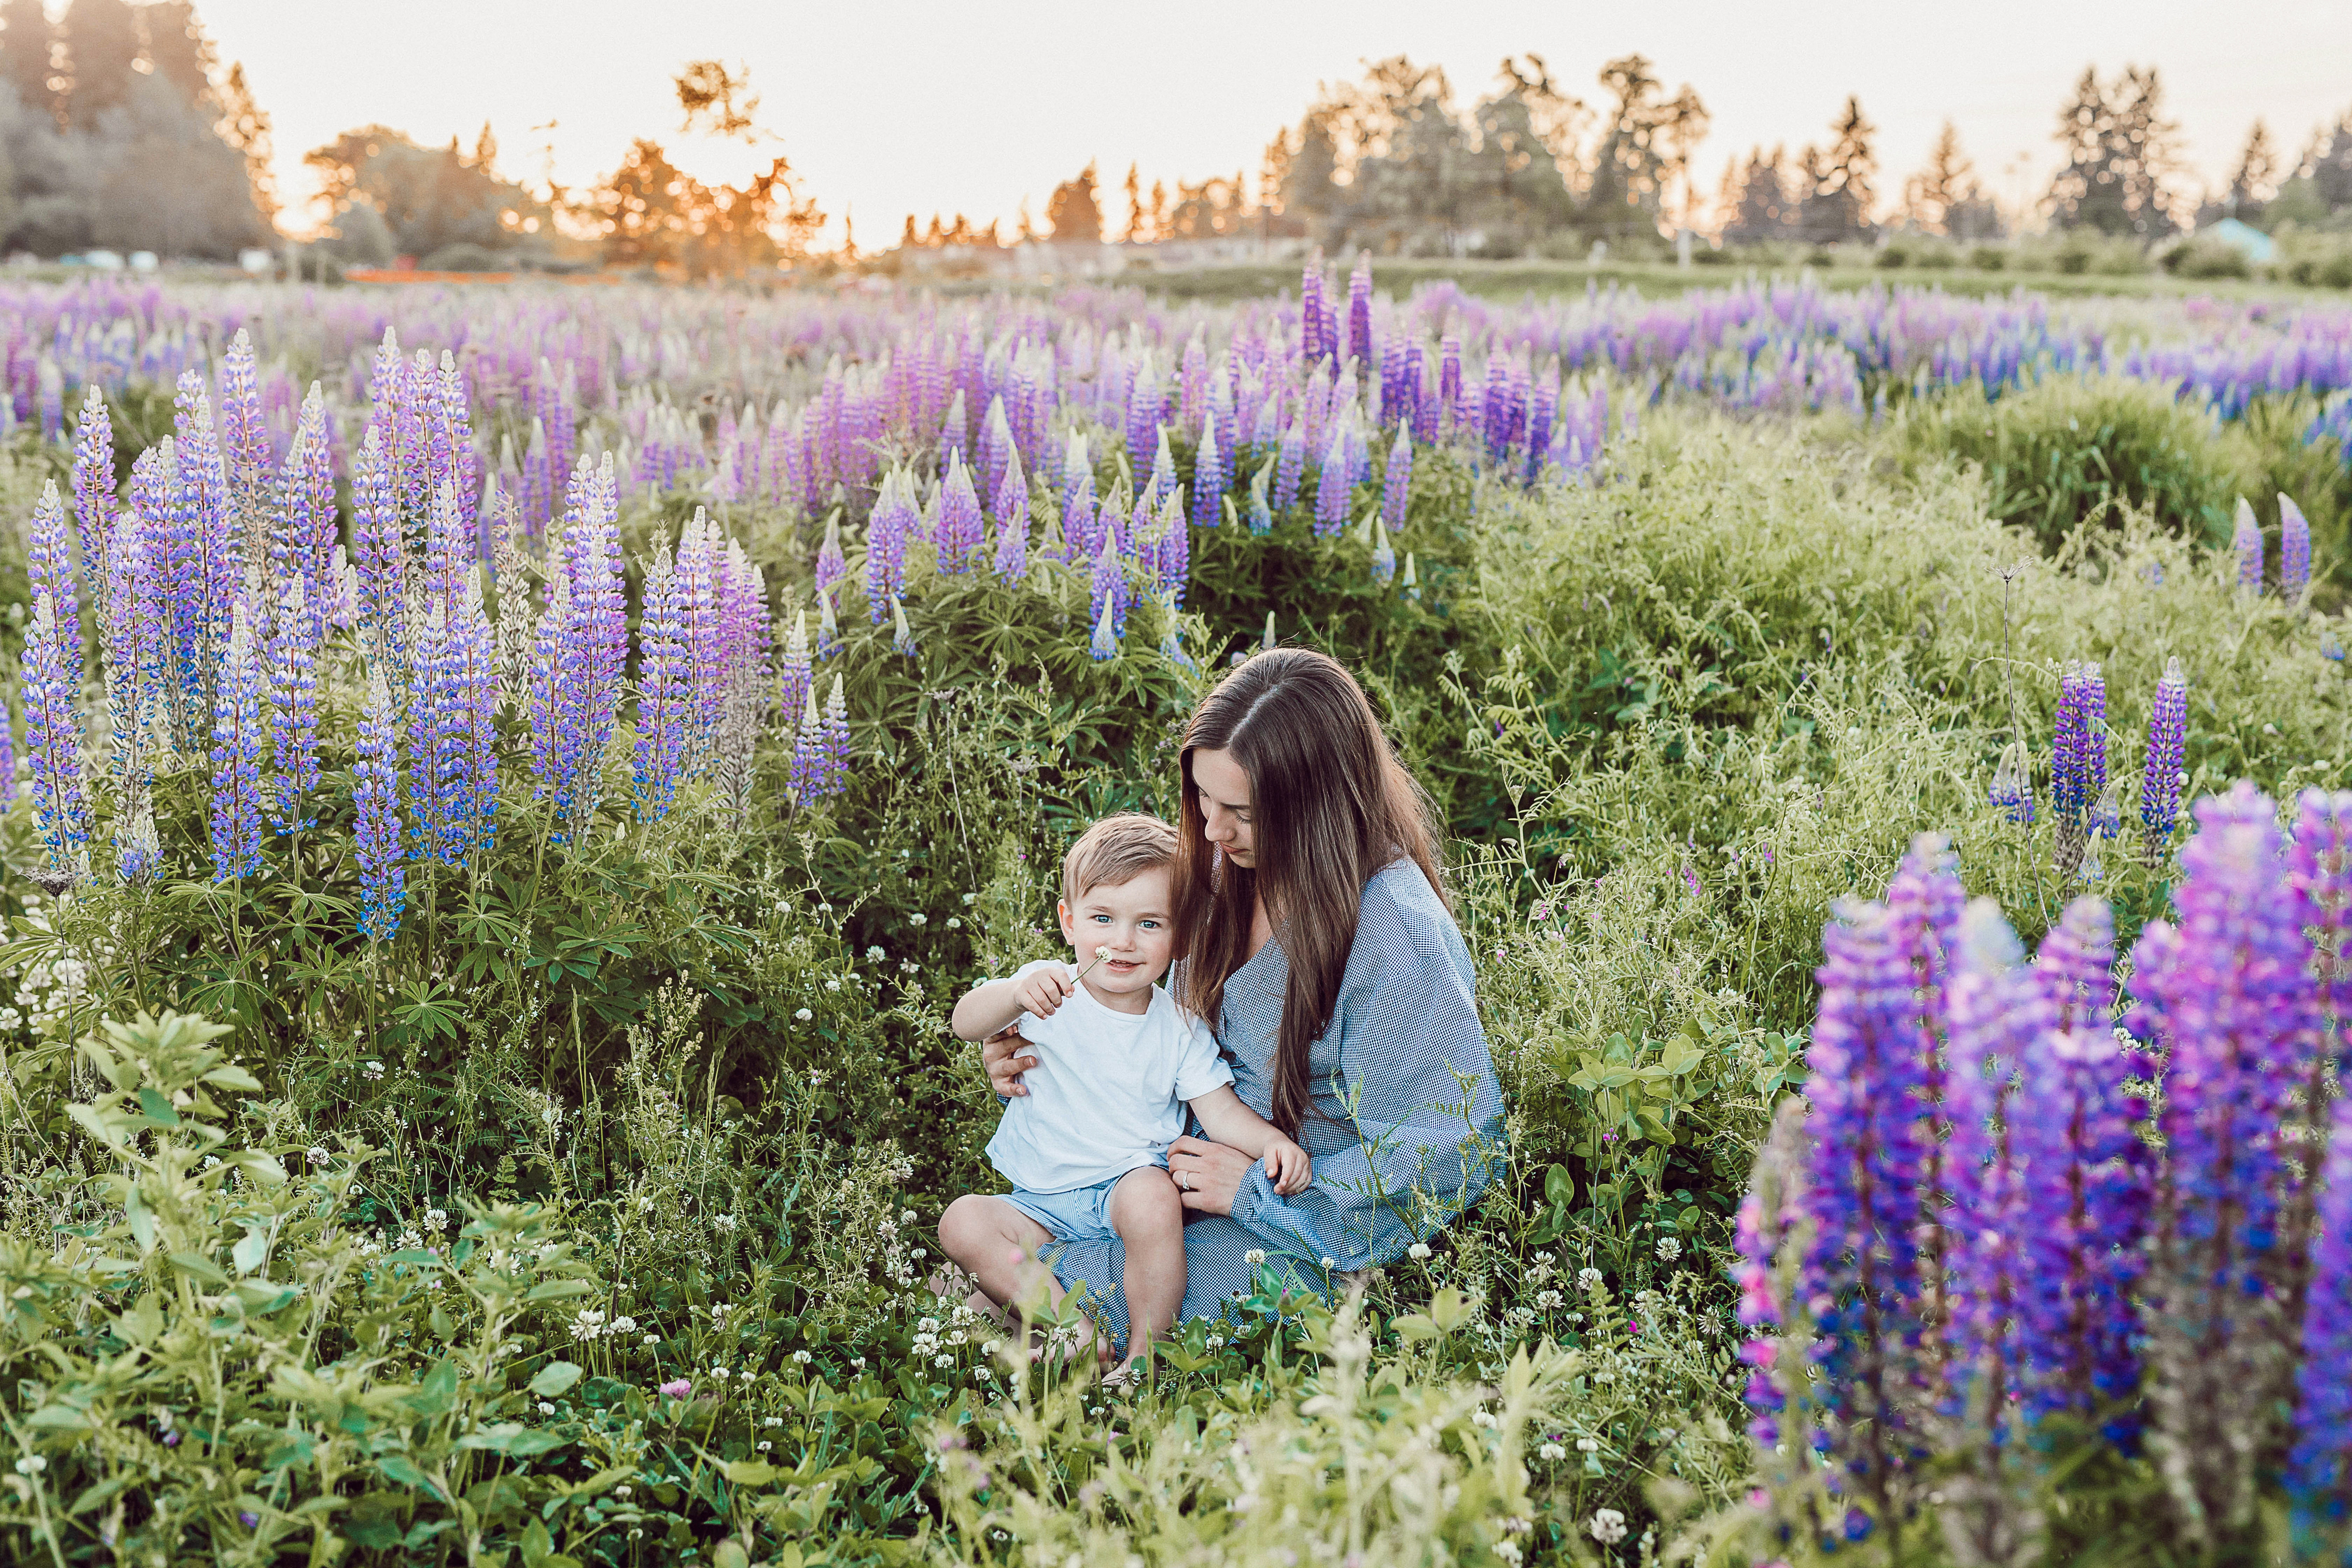 mother and child in field with purple flowers